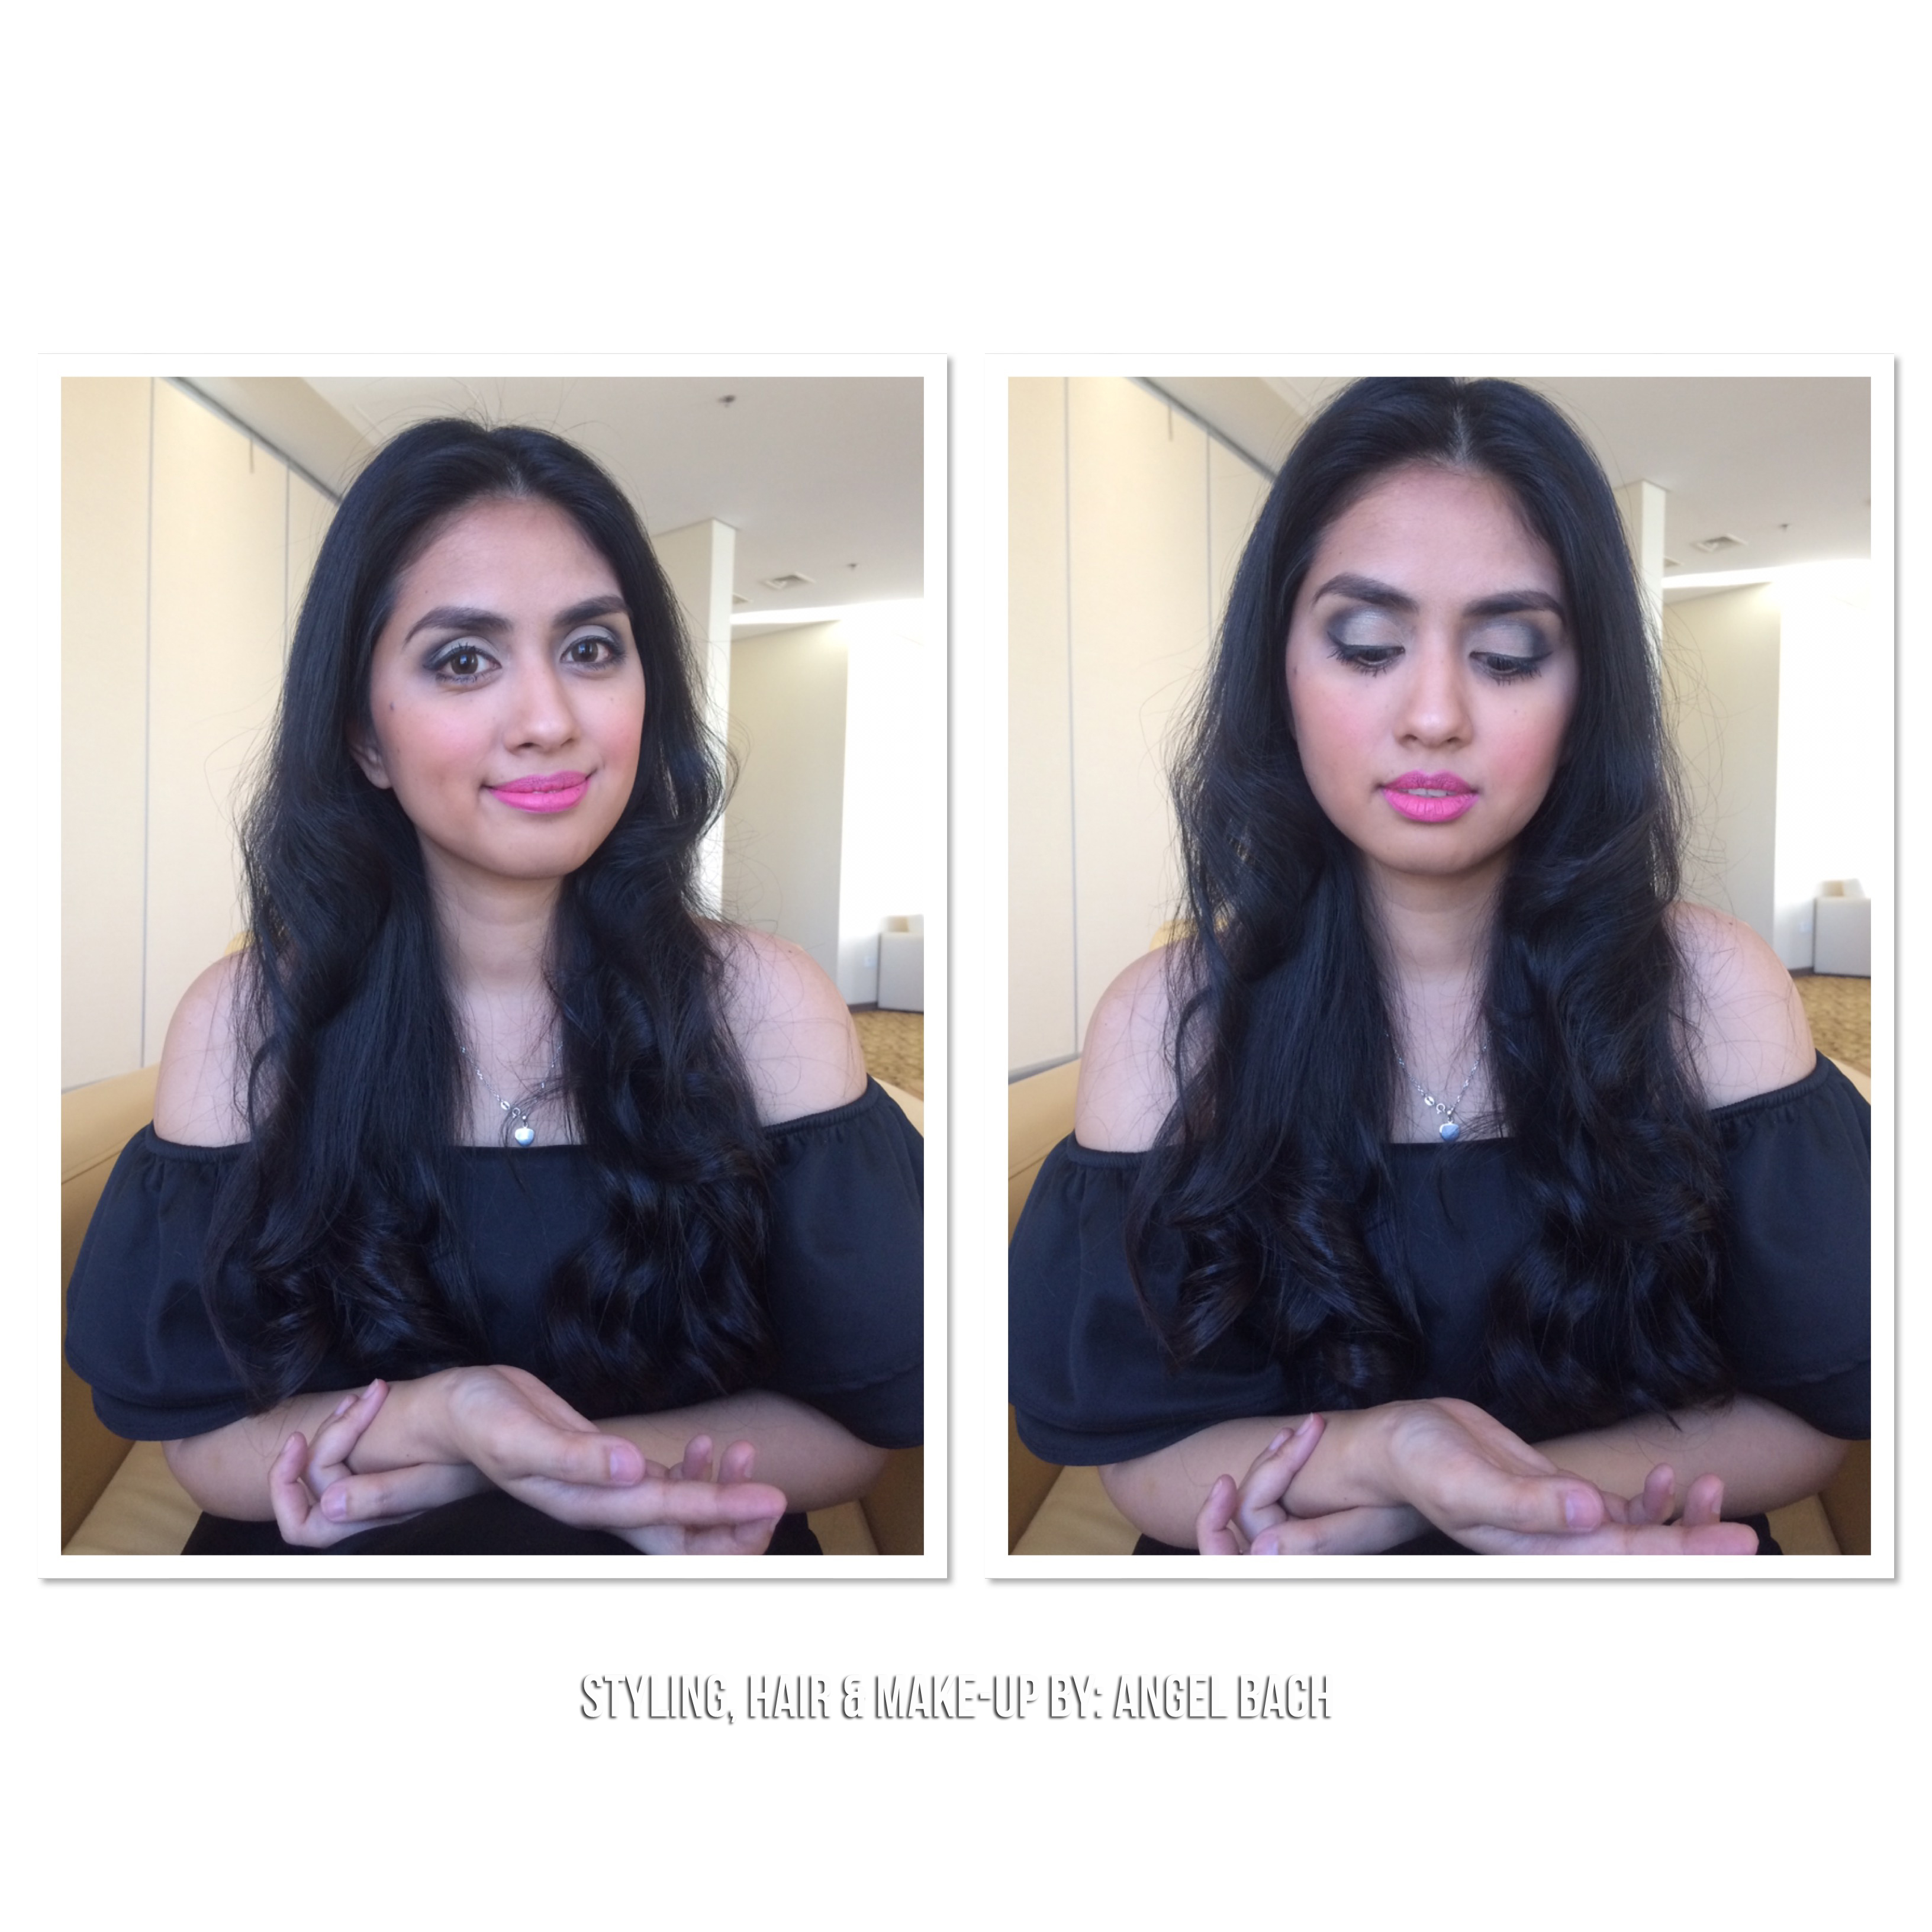 Arabian Look, Long Hair, Glamour Look, Half Cut Crease Eyeshadow, Pink Lipstick, Full Make-up